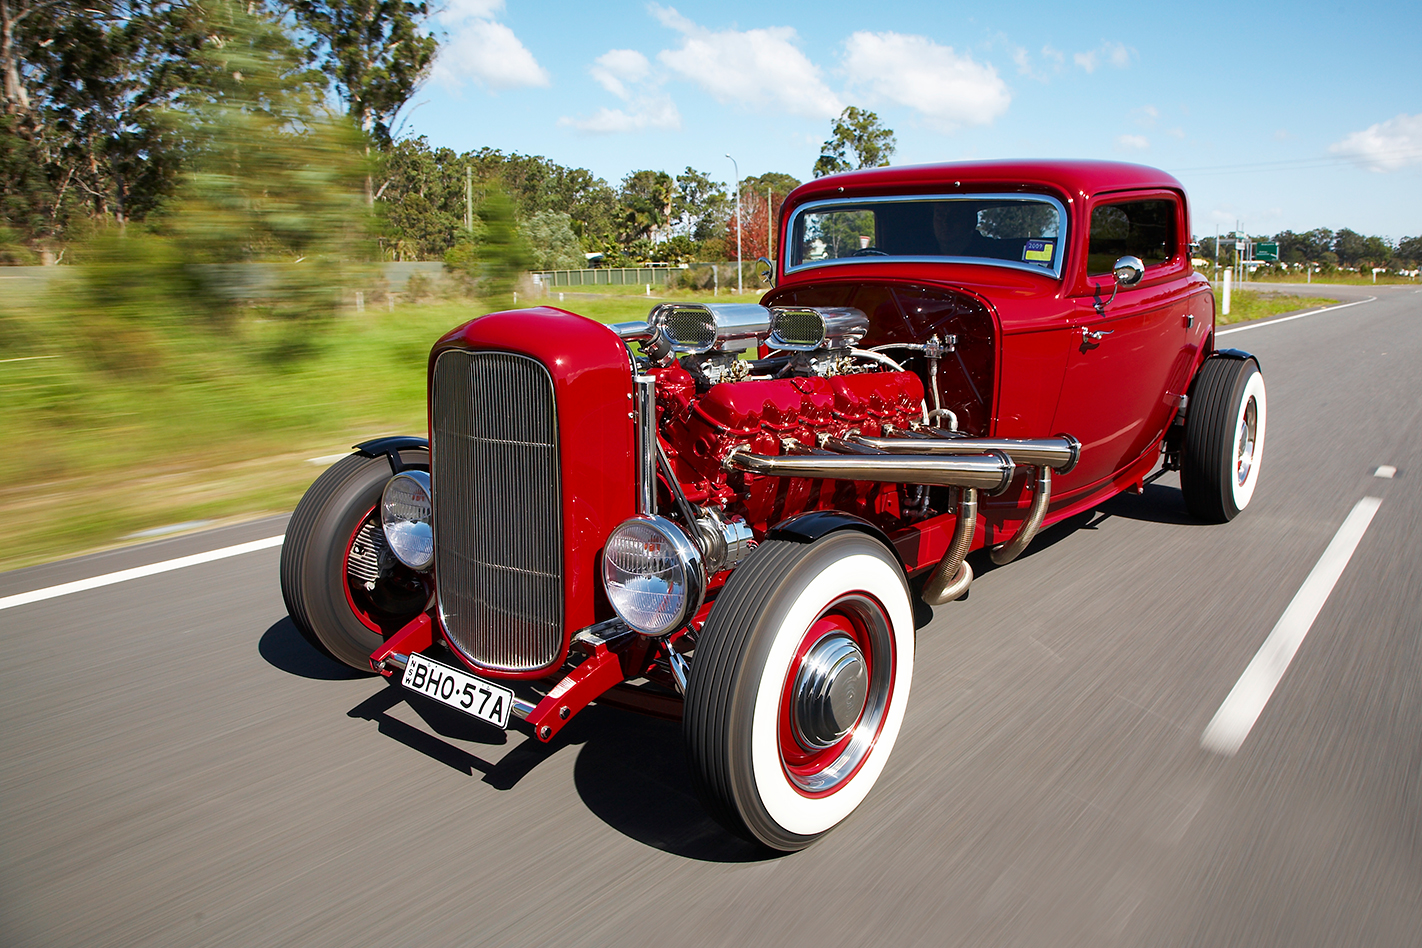 702CI '32 FORD COUPE V12